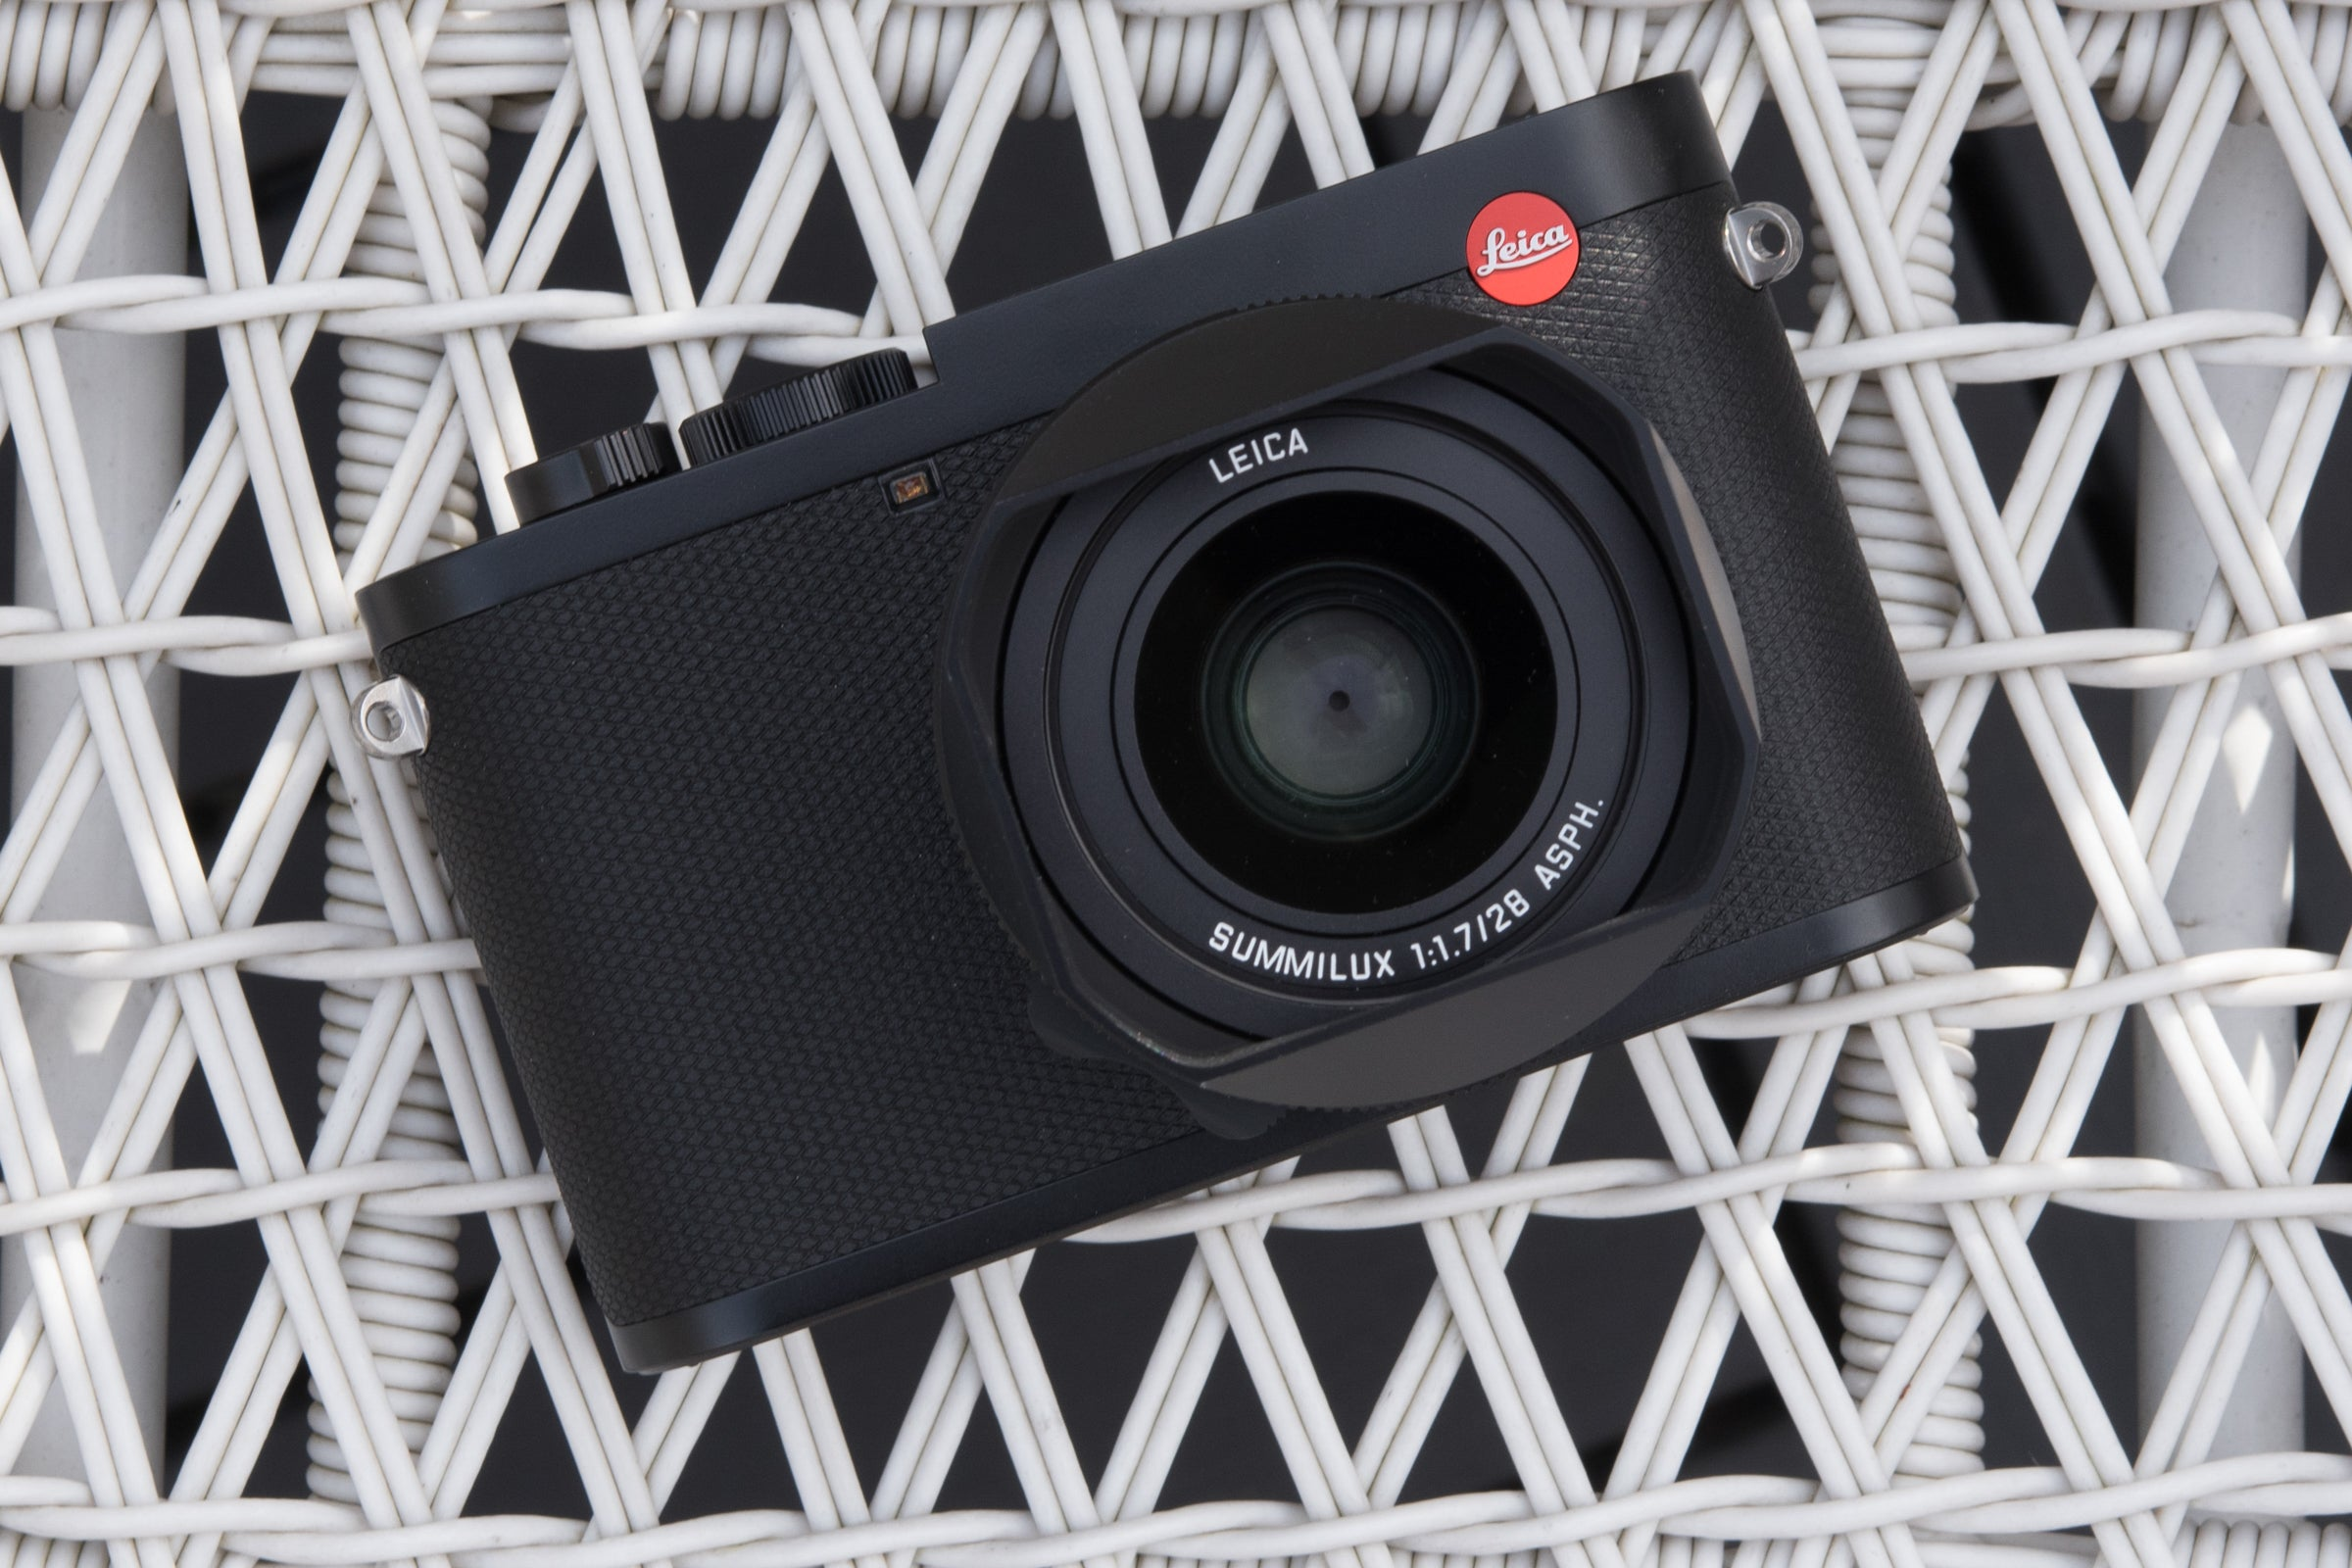 Best Compact Camera 2019: The 11 best smartphone upgrades